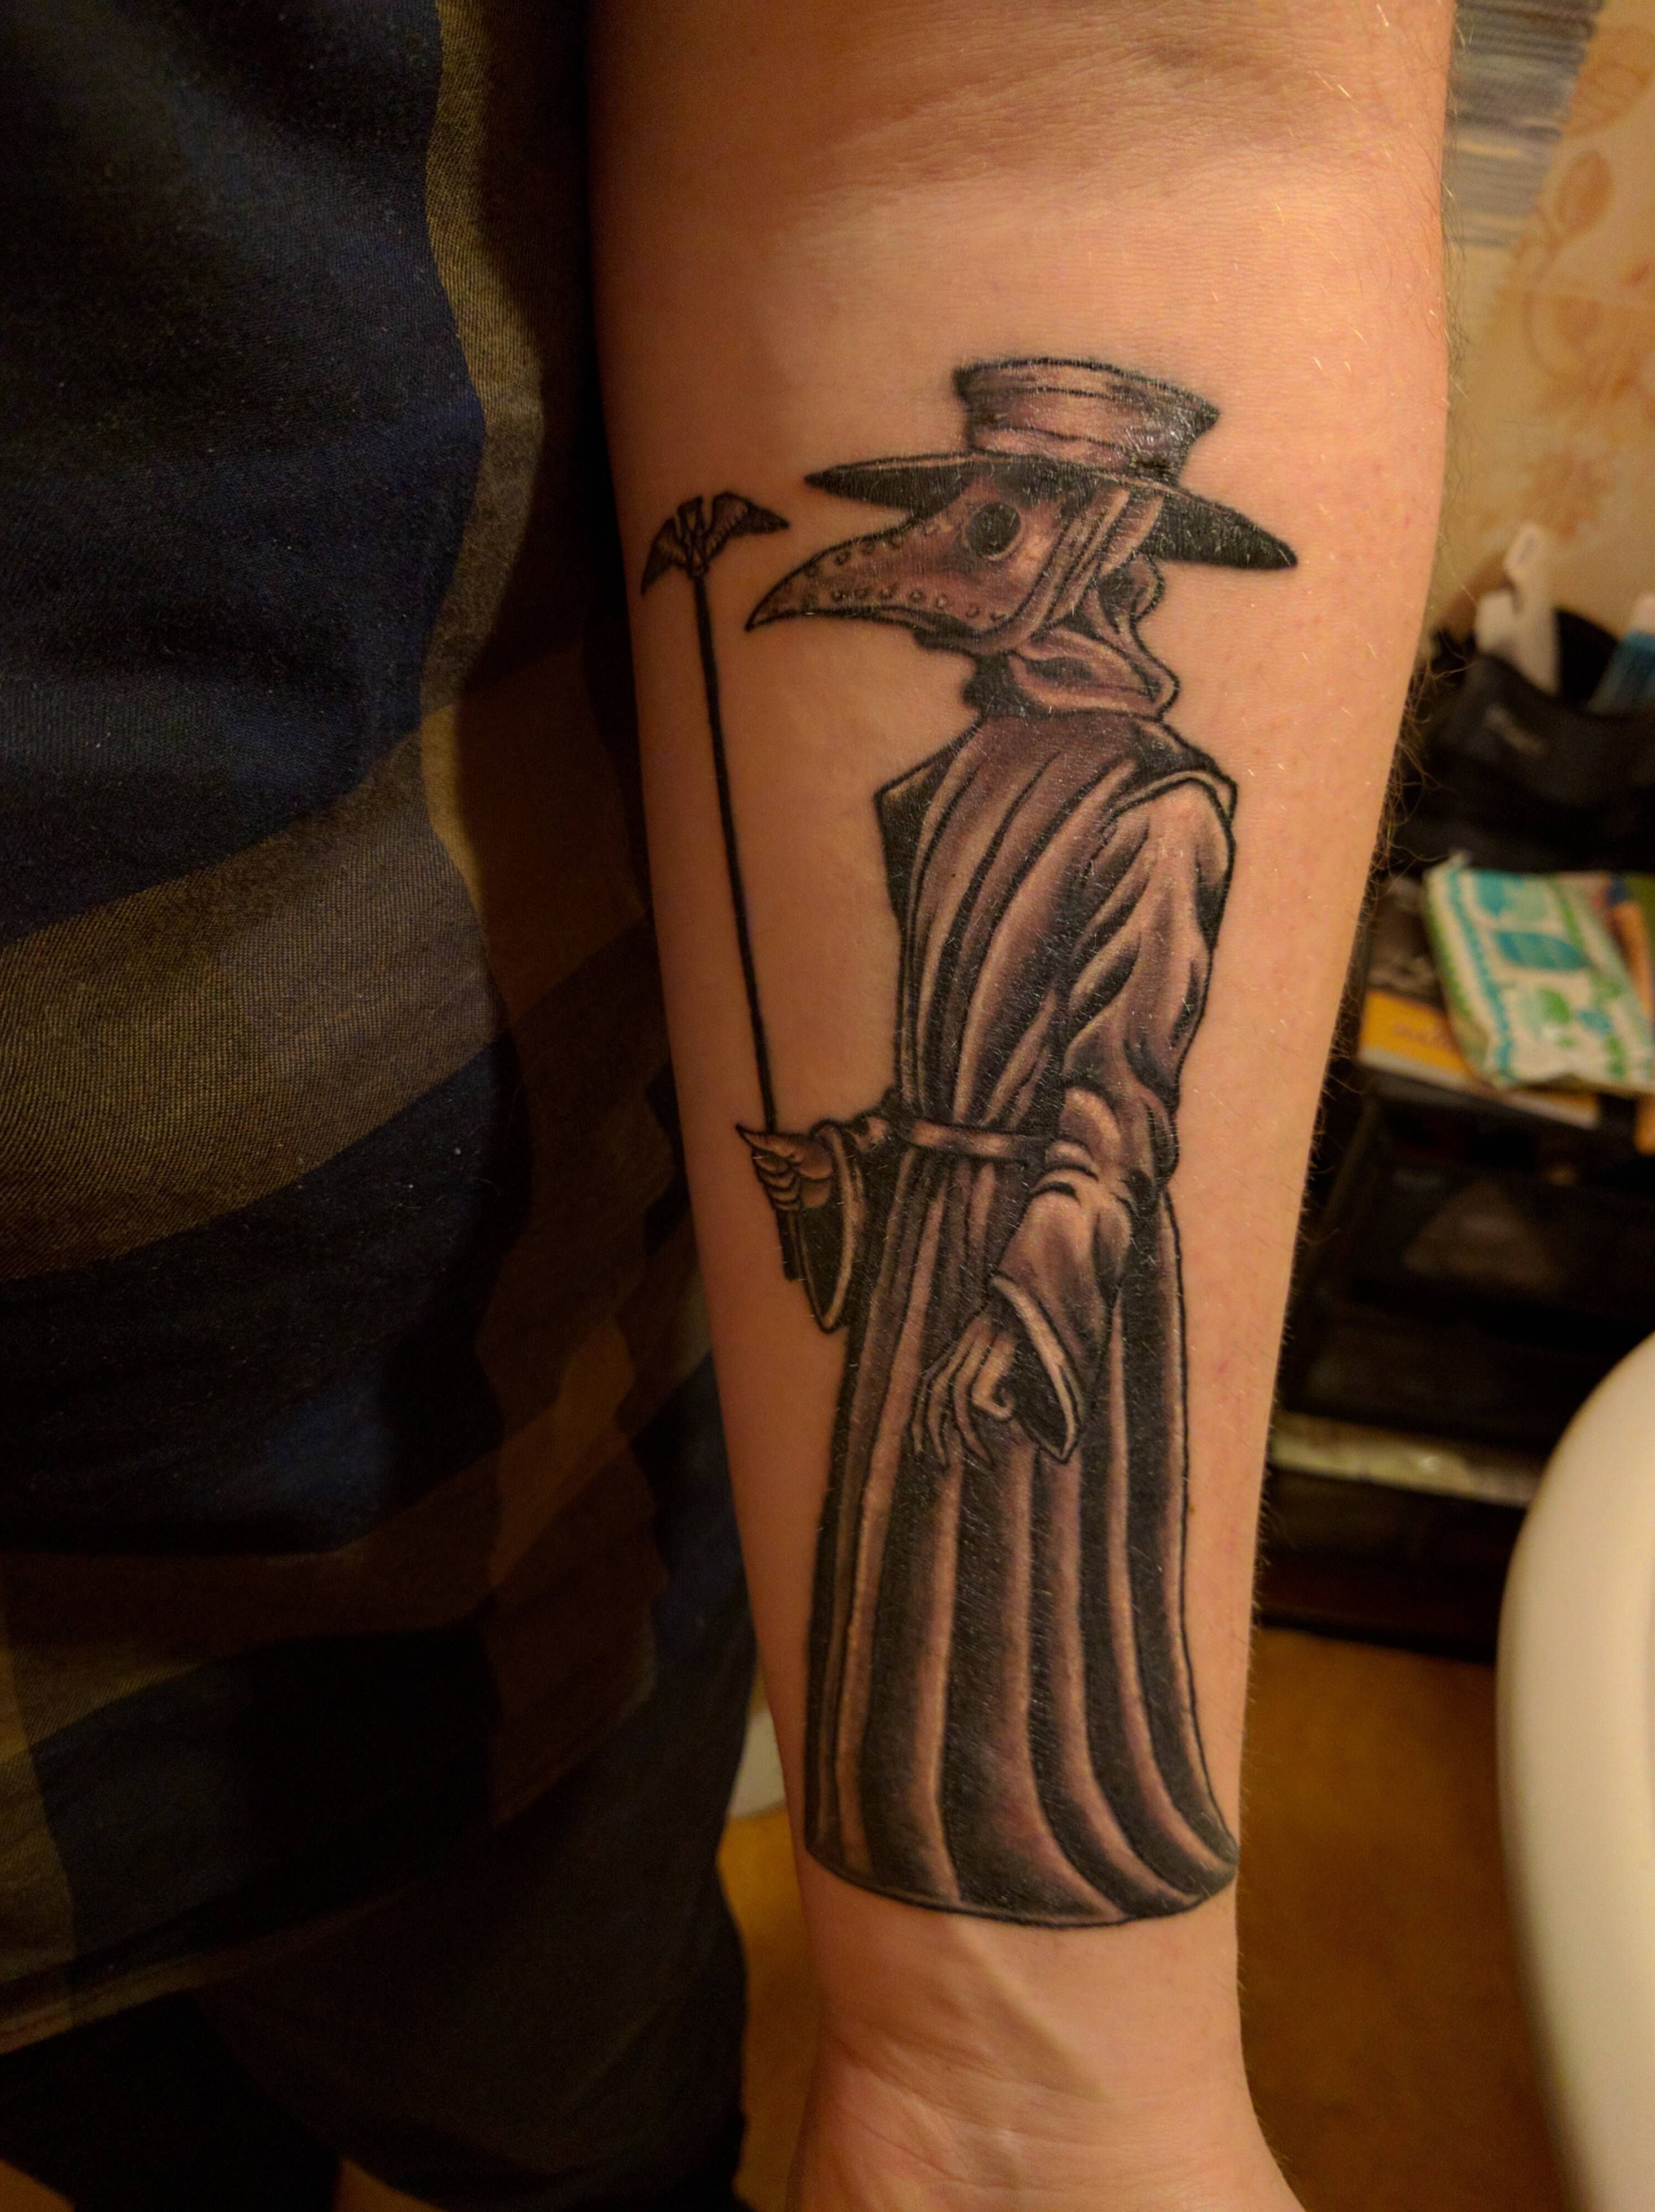 1st tattoo, Plague doctor done by Dimitrii at Badline